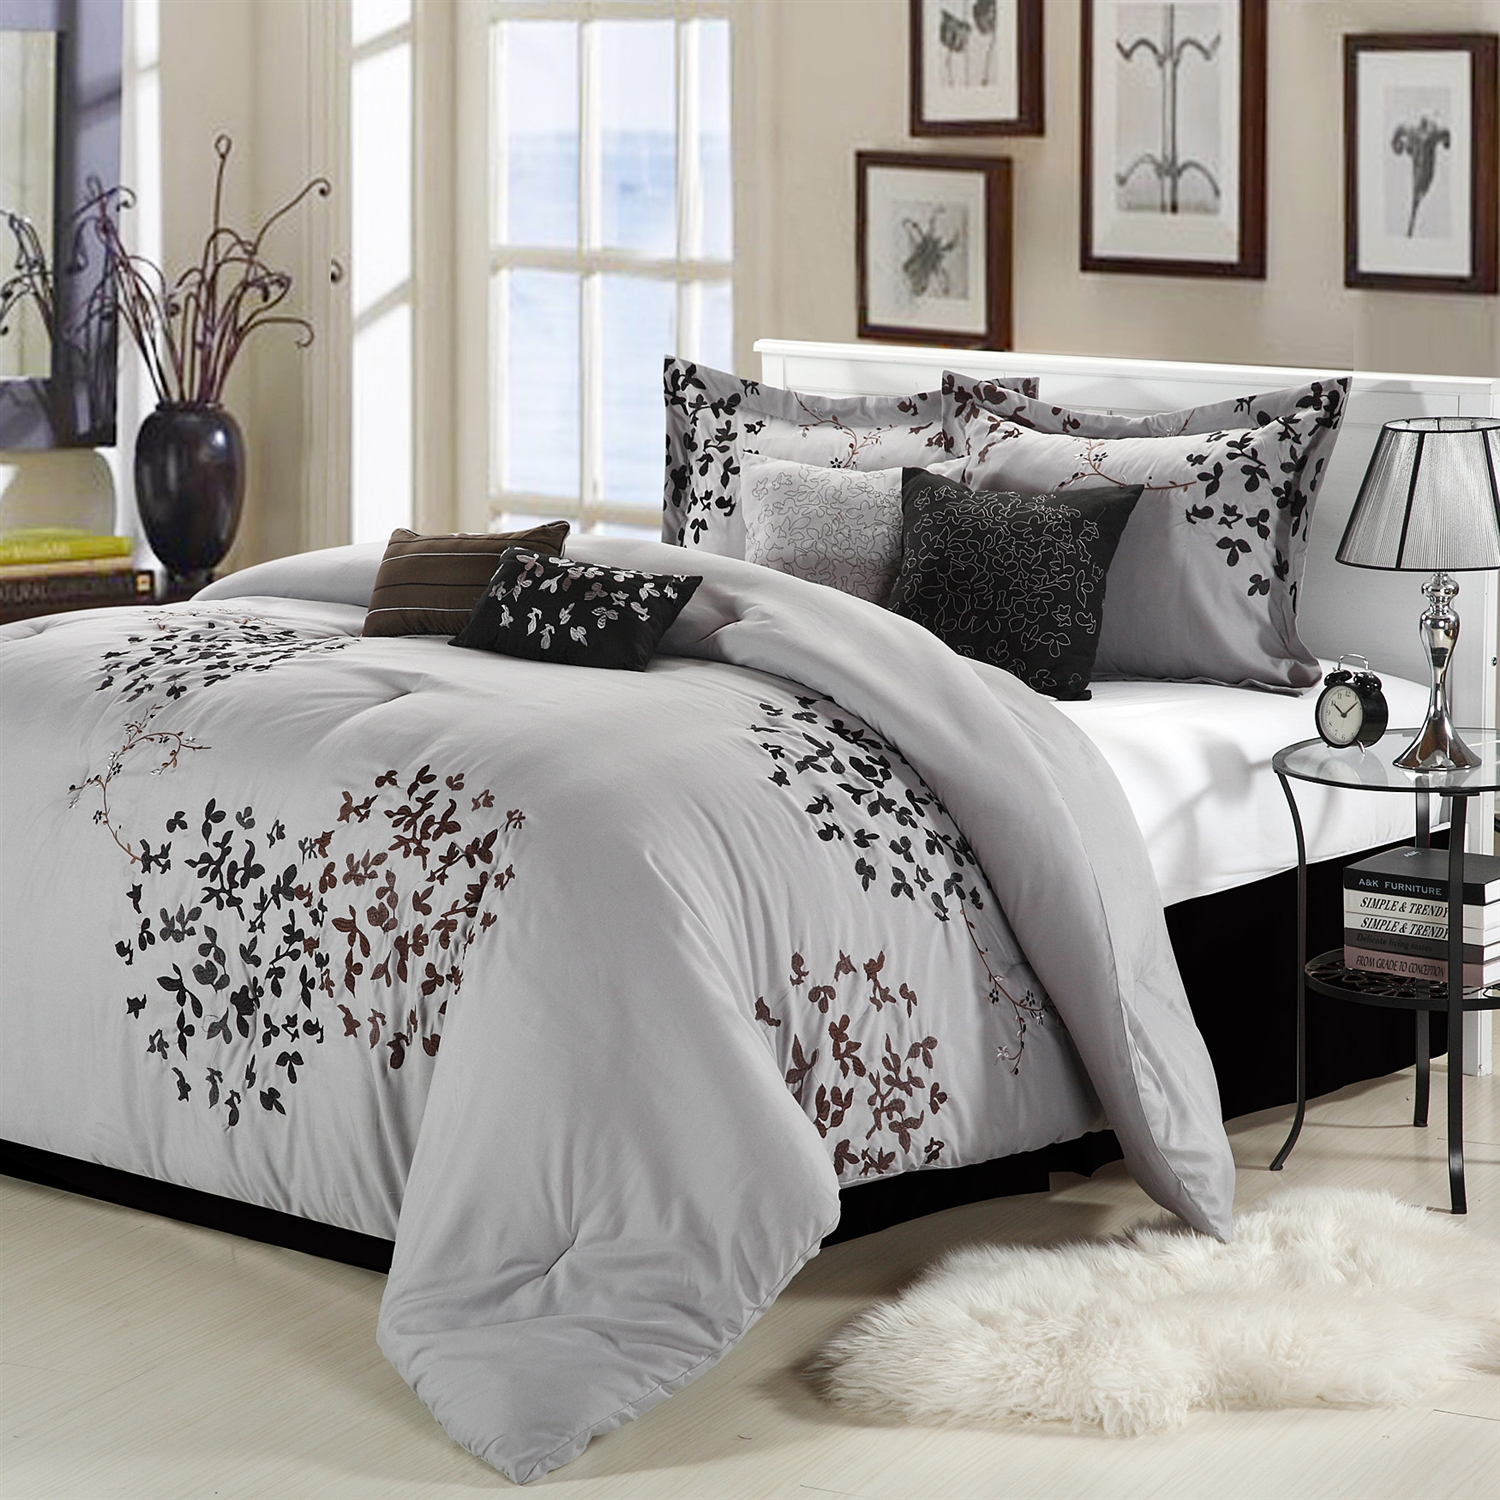 Queen size 8-Piece Comforter Set in Silver Gray Black ...